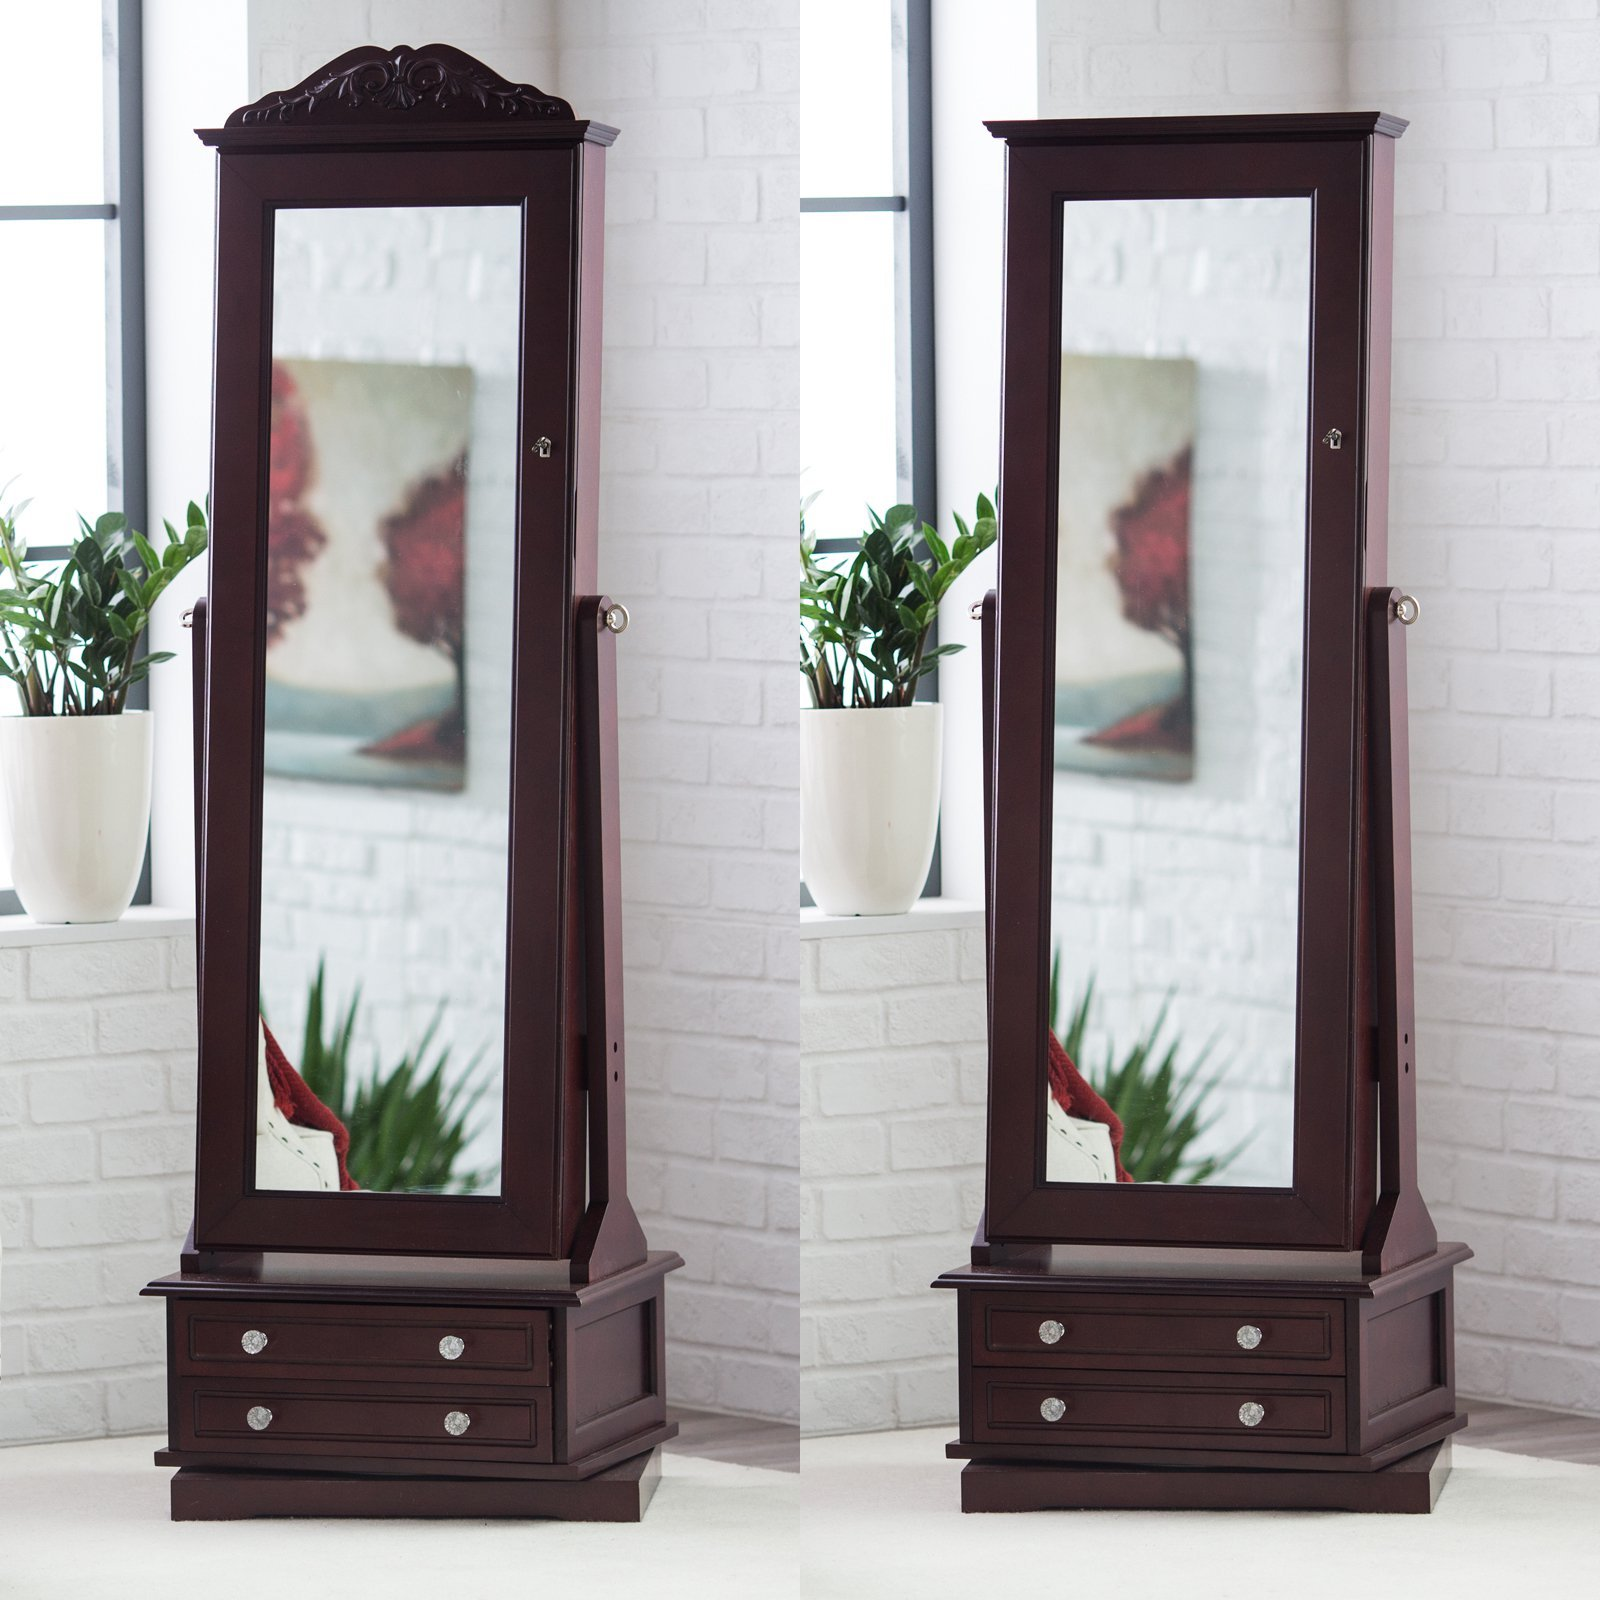 Cheval mirror jewelry armoire swivel floor standing for Dressing armoire